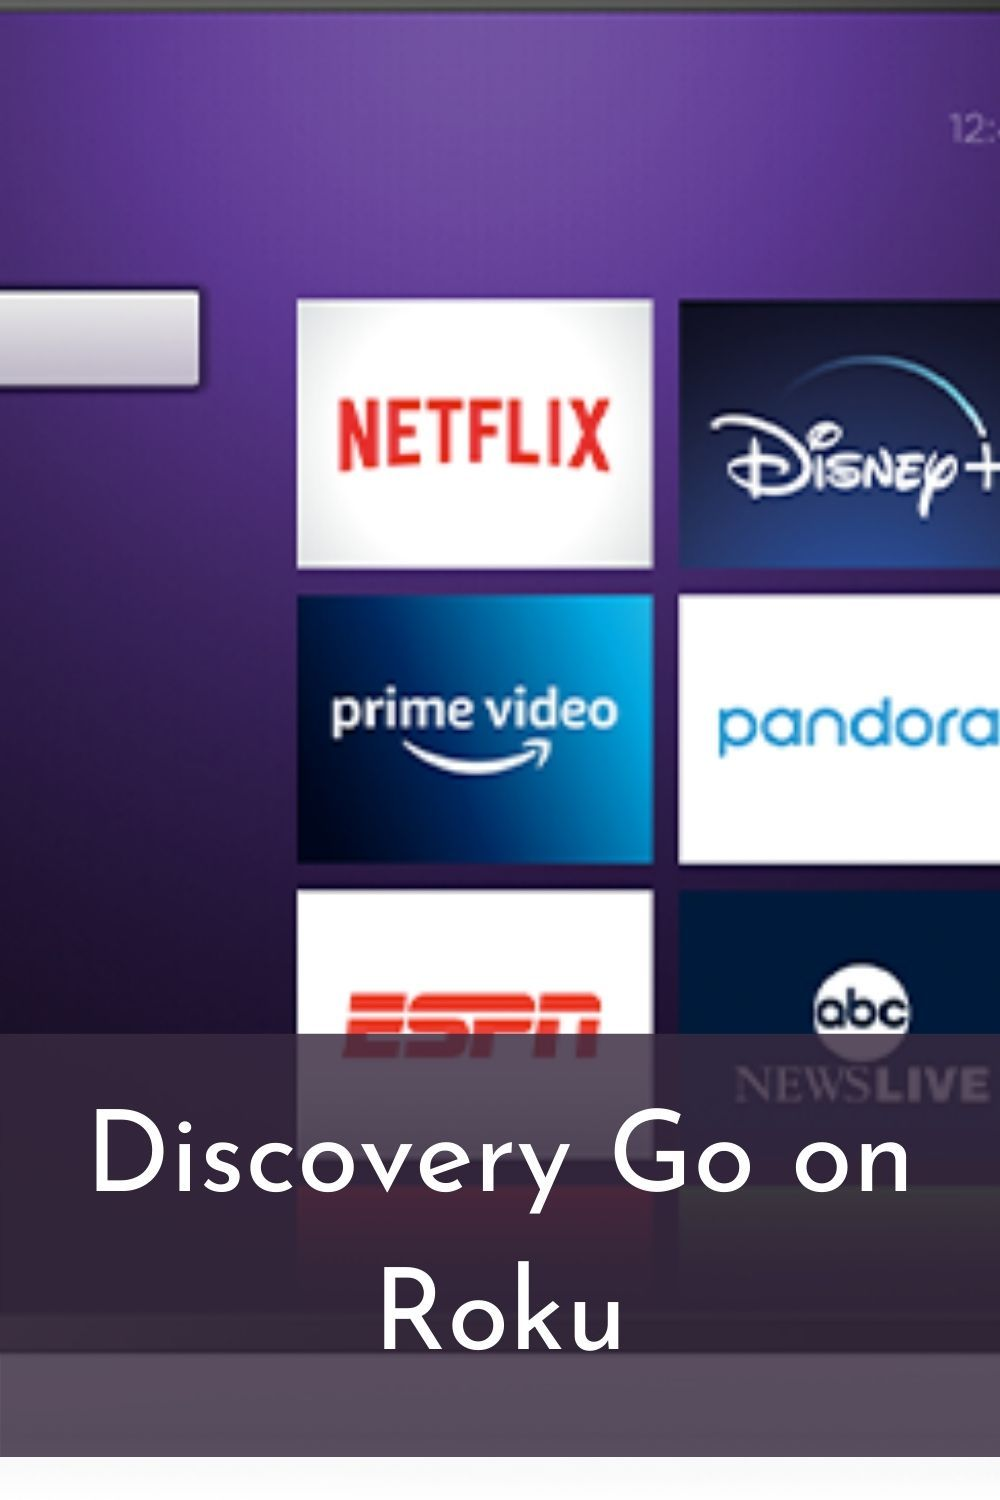 Watch Free Live Tv On Roku Easy Guides 2020 Roku Live Tv Streaming Devices